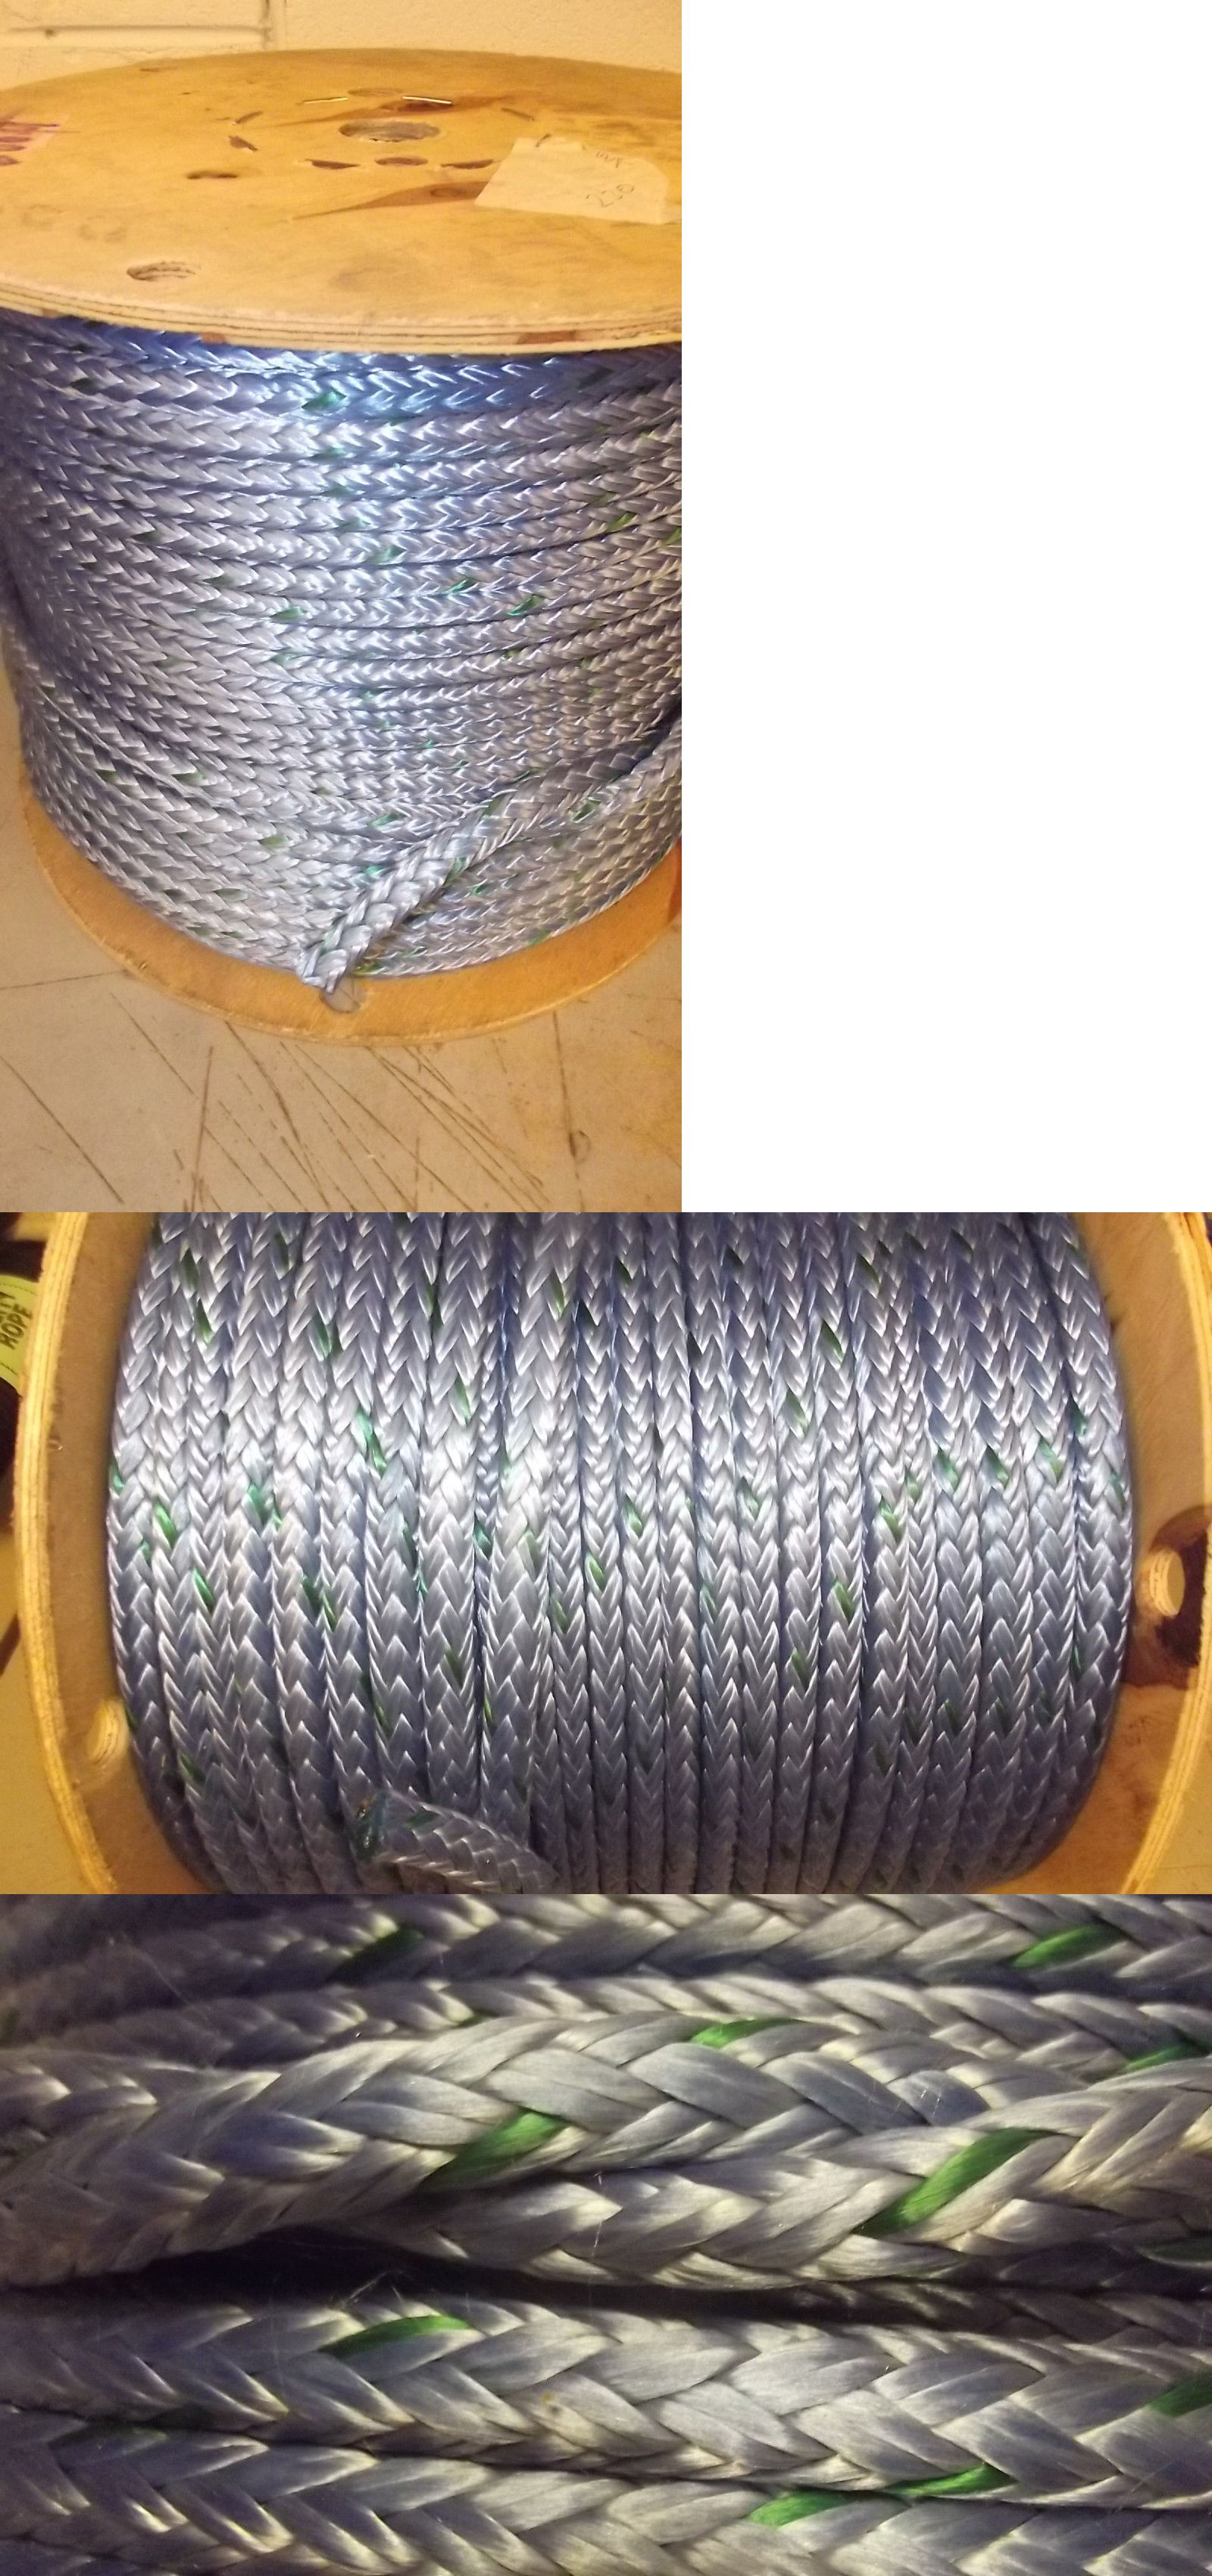 12 Wire Pulling Rope - WIRE Center •